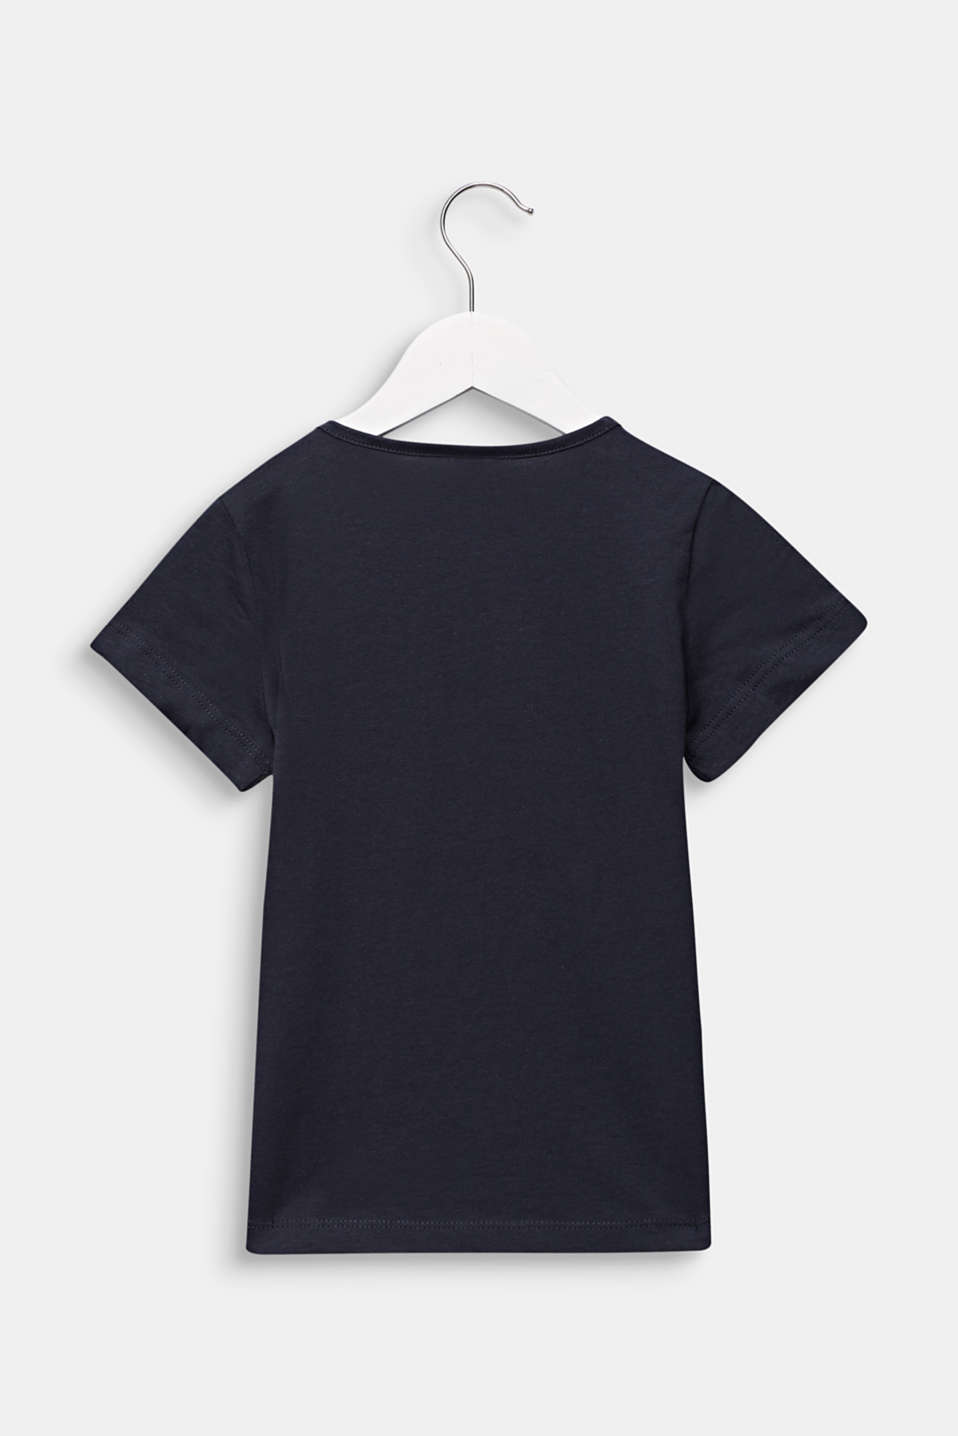 Logo print T-shirt in 100% cotton, ANTHRACITE, detail image number 1